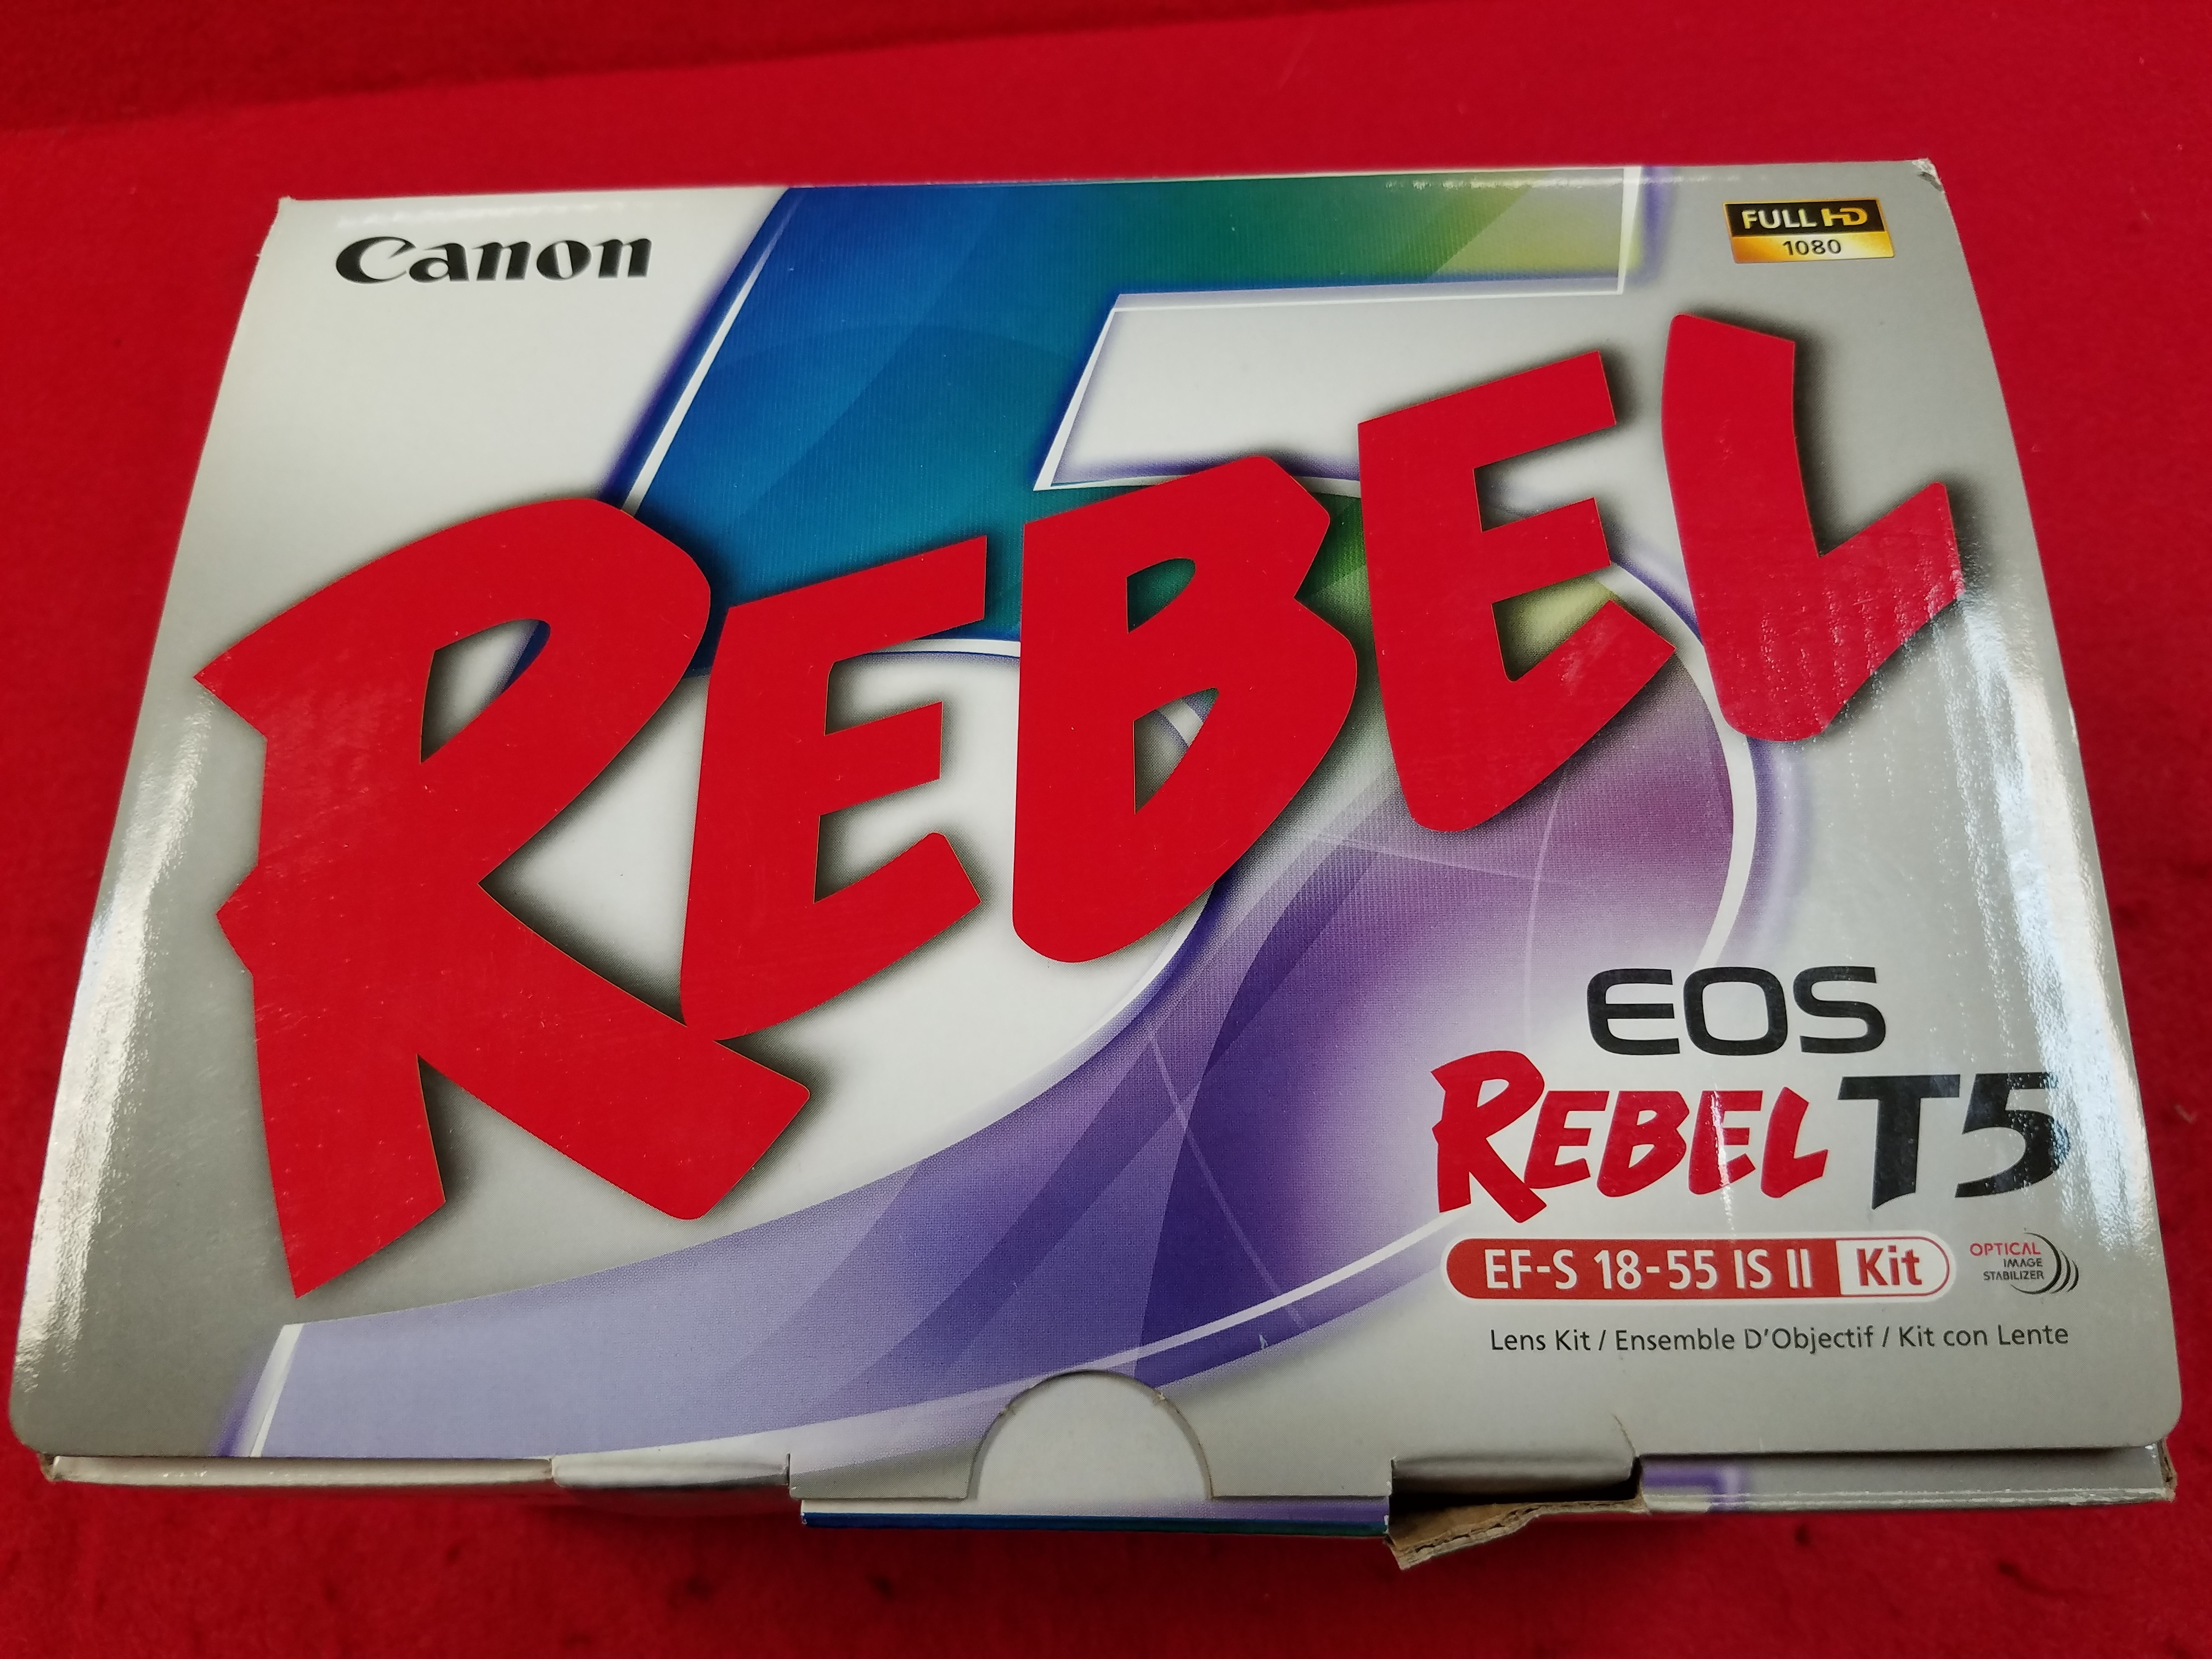 CANON - EOS REBEL T5 KIT IN BOX W/ BATTERY, CHARGER, LENS, & MANUAL